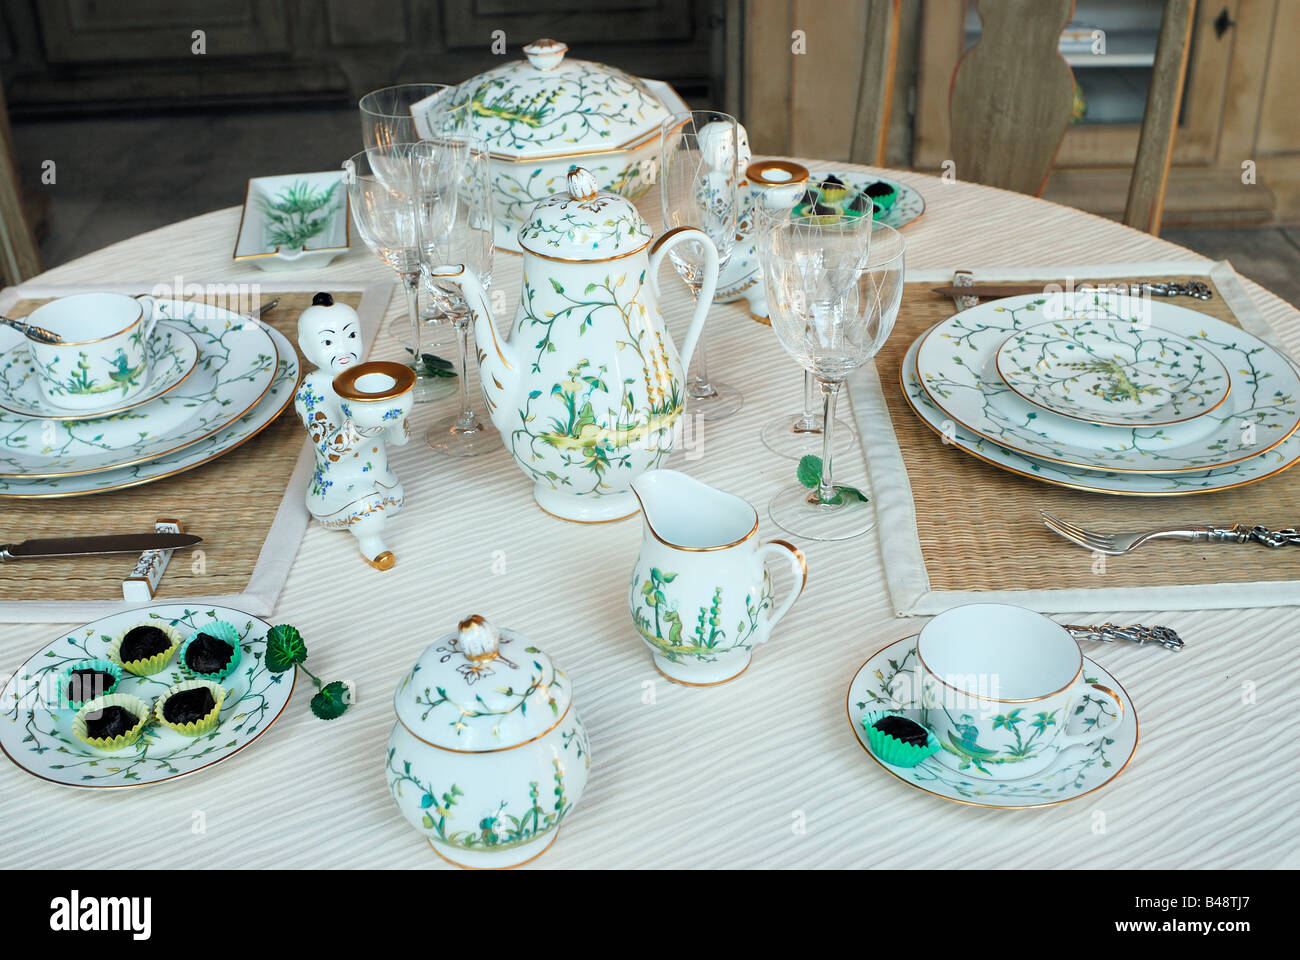 Table Setting In French Paris France Shopping French Ceramics Store Table Setting On